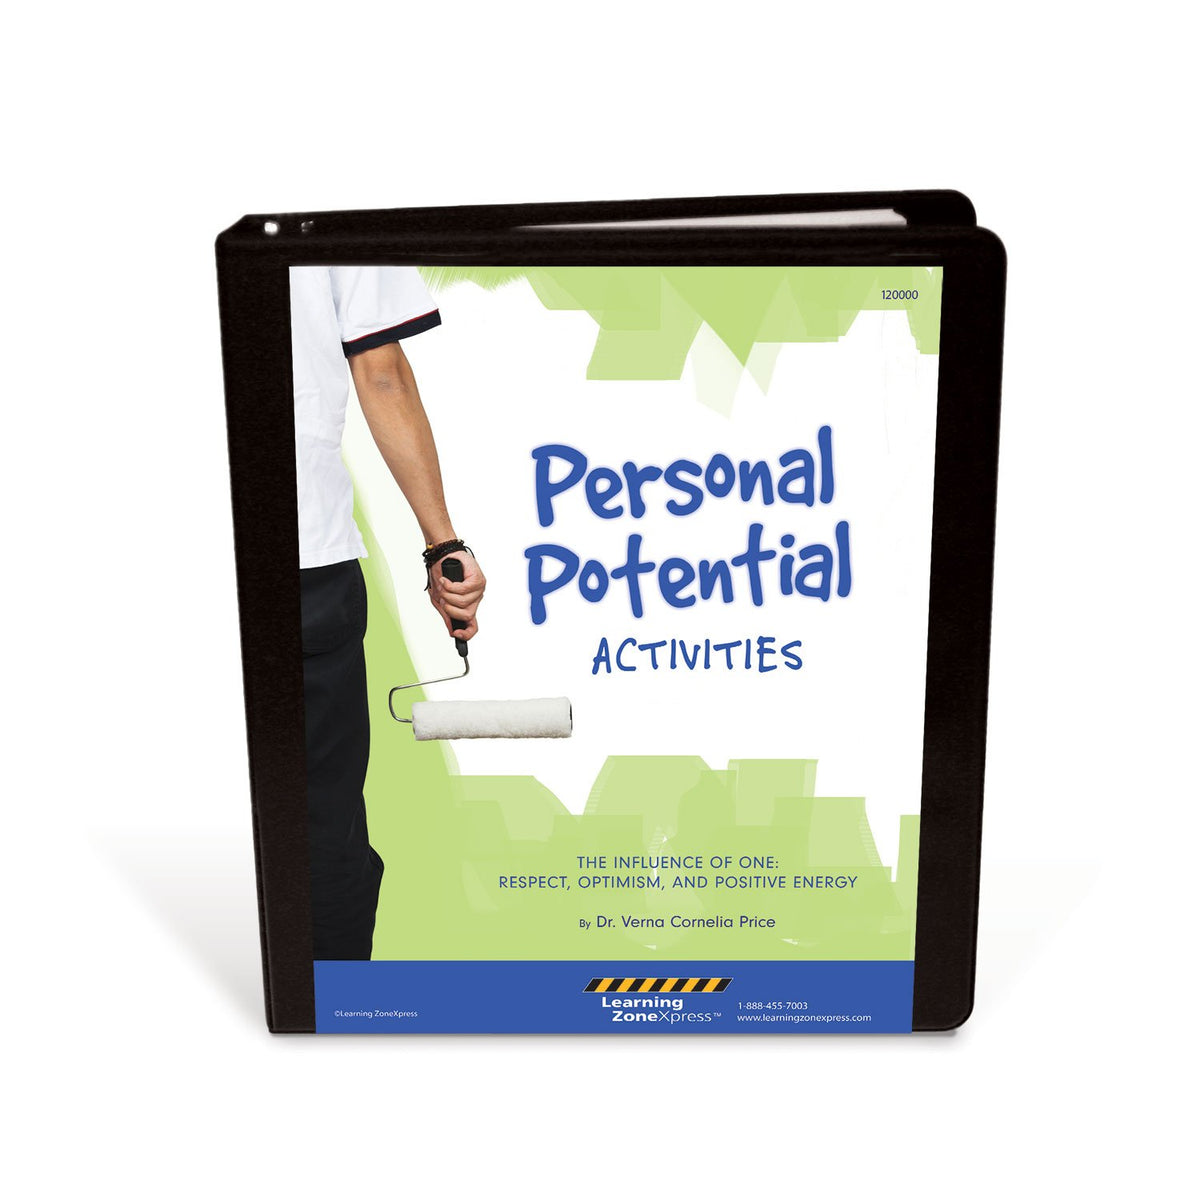 Personal Potential Activities